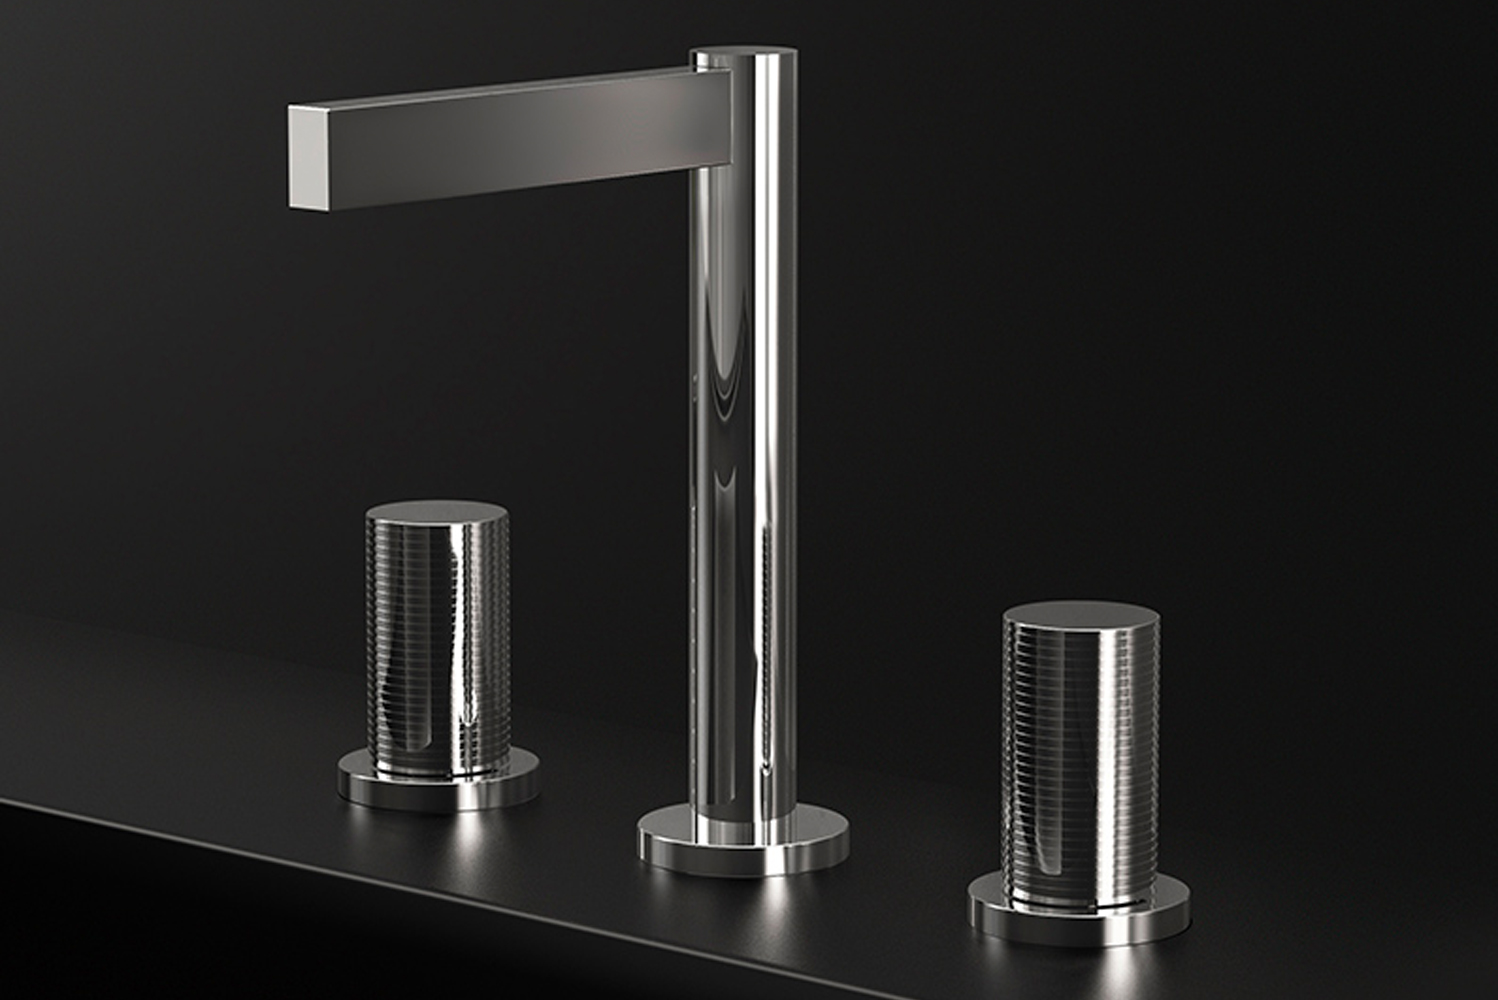 The Nerea and Lollipop are also available as wall-mount faucets.